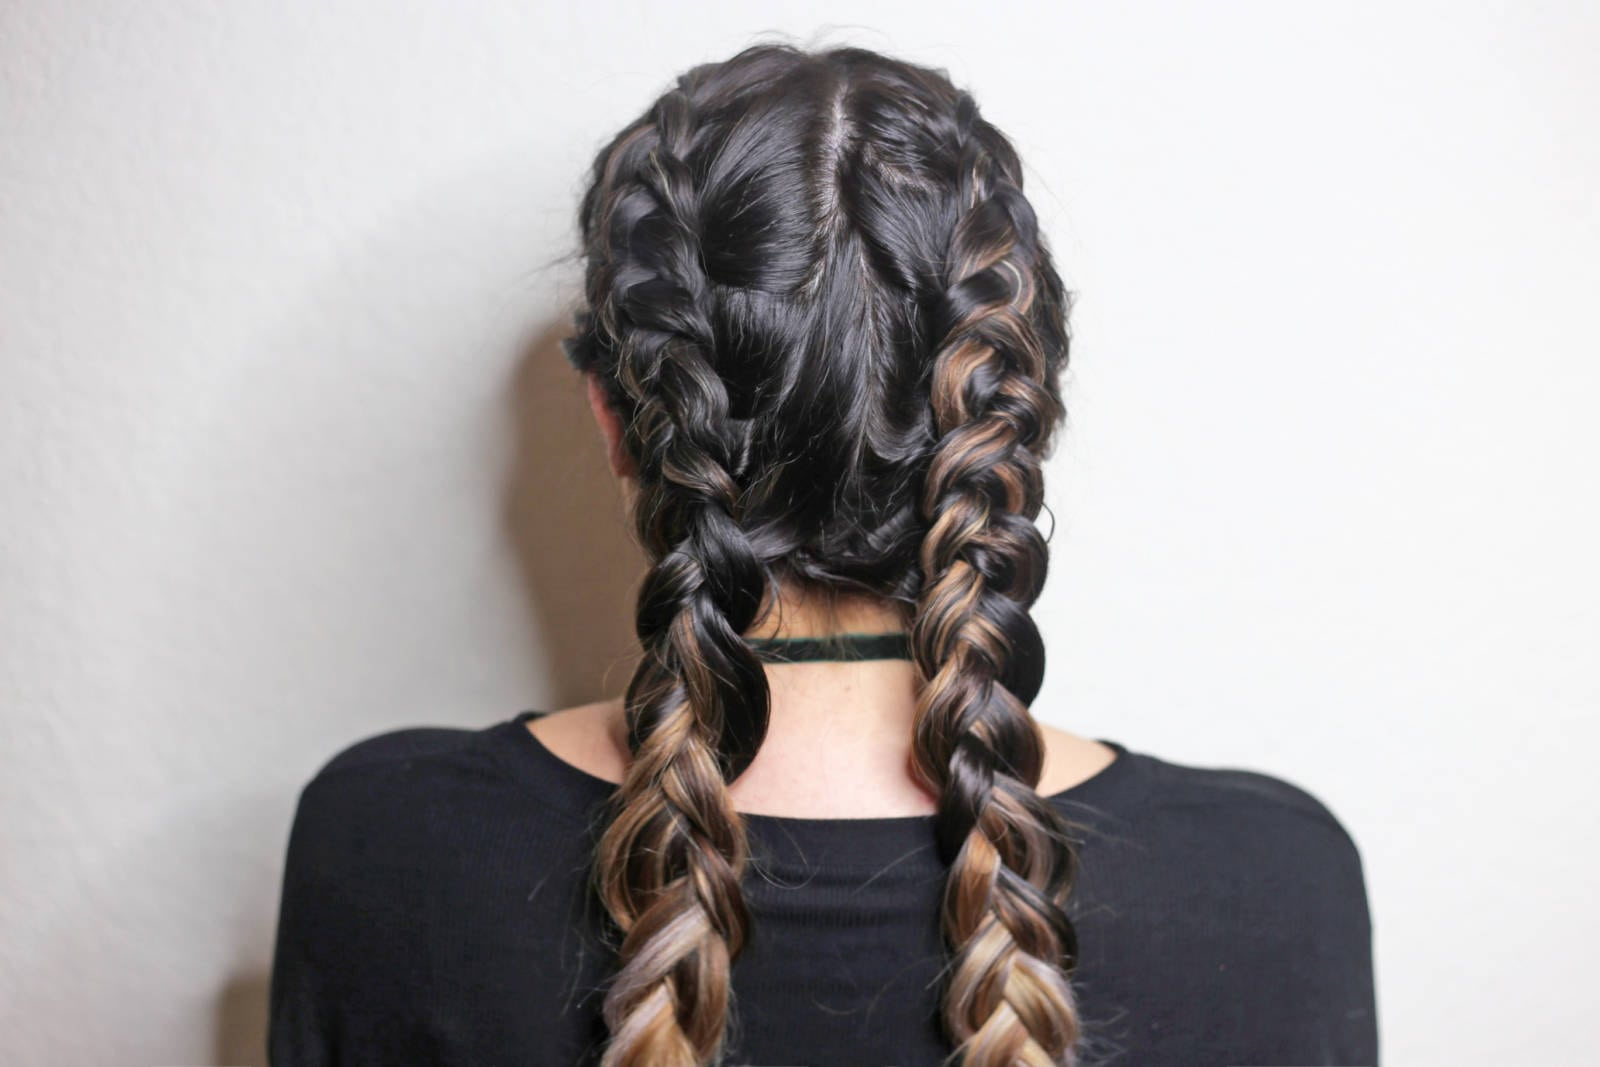 Double Dutch Braids For Beginners by popular Orlando beauty blogger Mash Elle | beauty blogger Mash Elle | dutch braids tutorial | beginner hair tutorial | suave